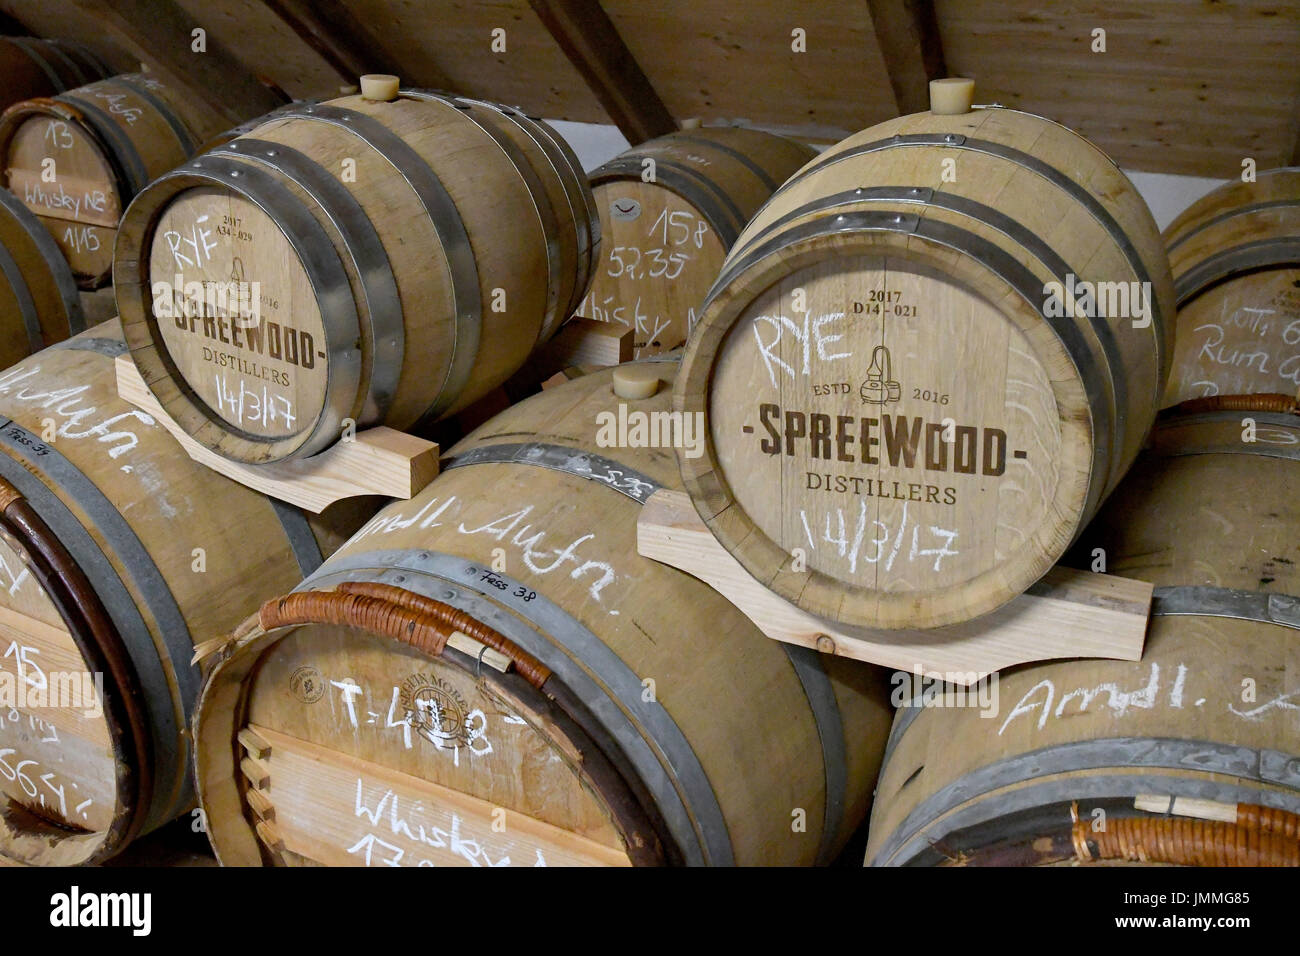 Schlepzig, Germany. 26th July, 2017. Barrels are stored at the storage of the Spreewood Distillers in Schlepzig, Stock Photo